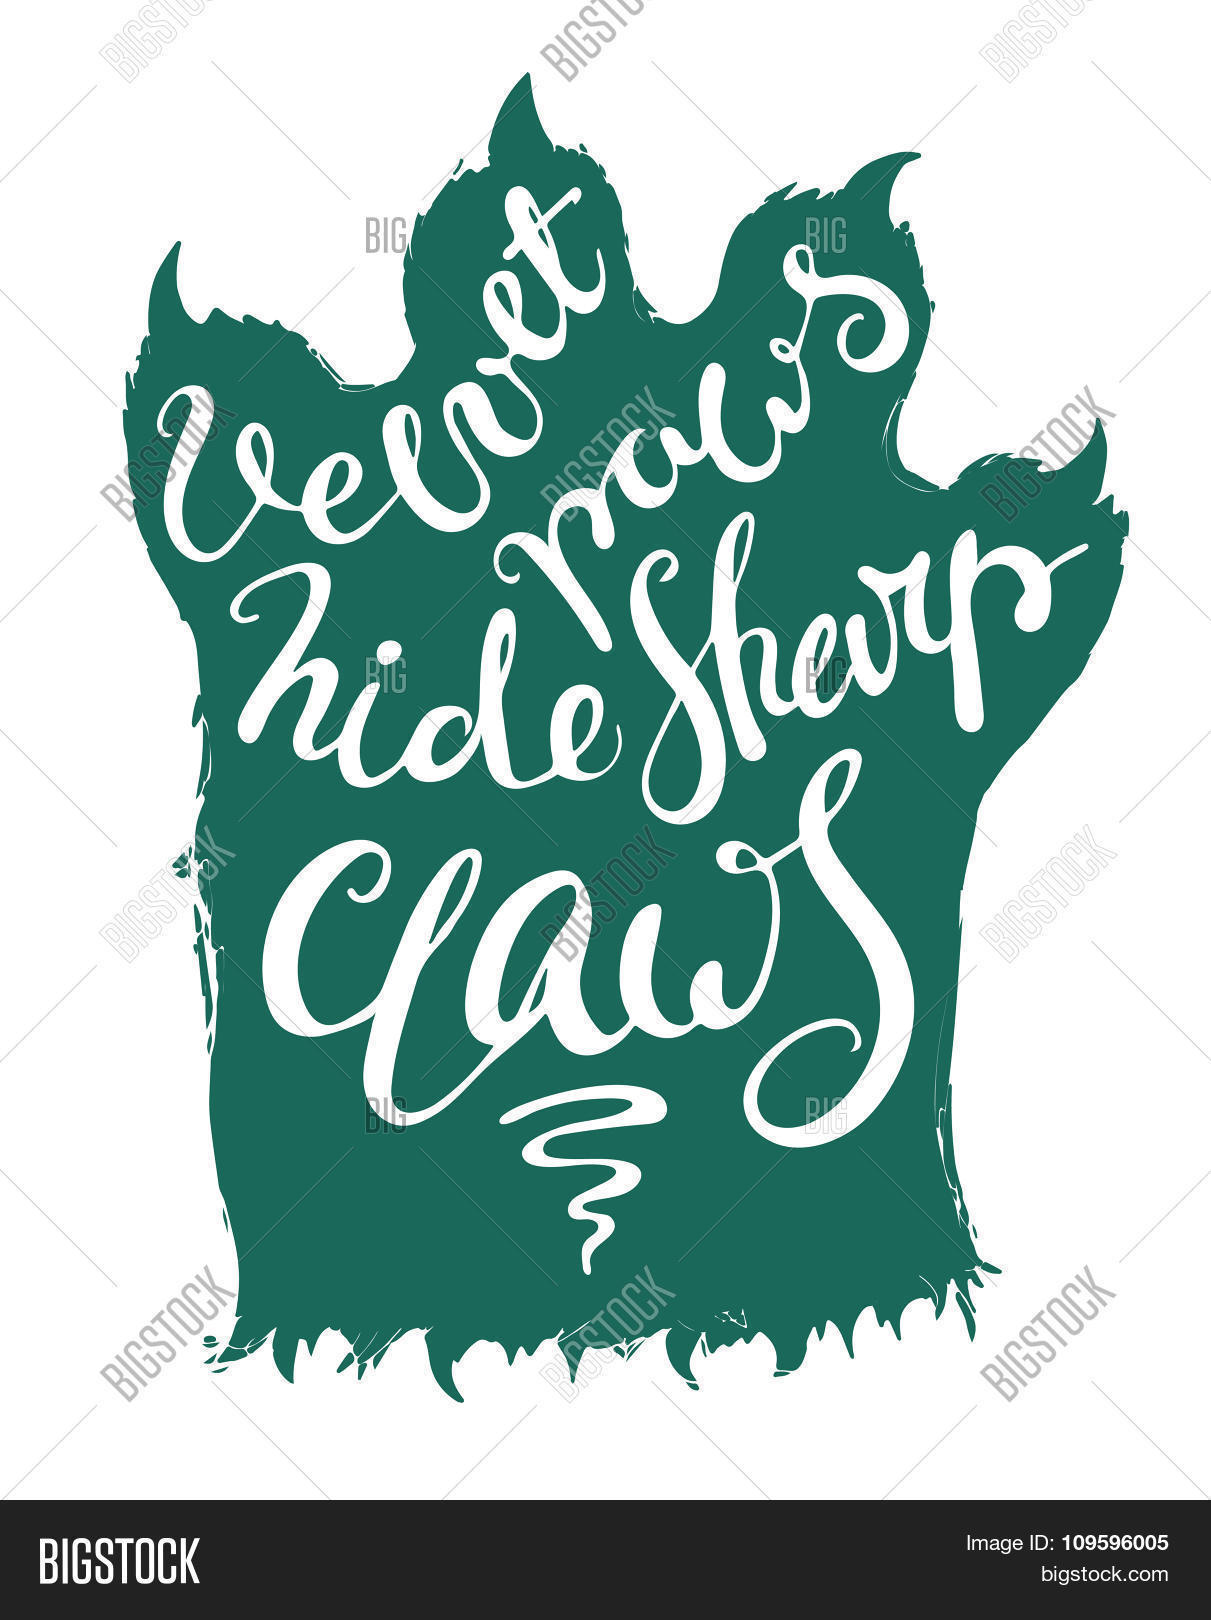 Lettering velvet paws hide sharp claws. Stock Vector & Stock.